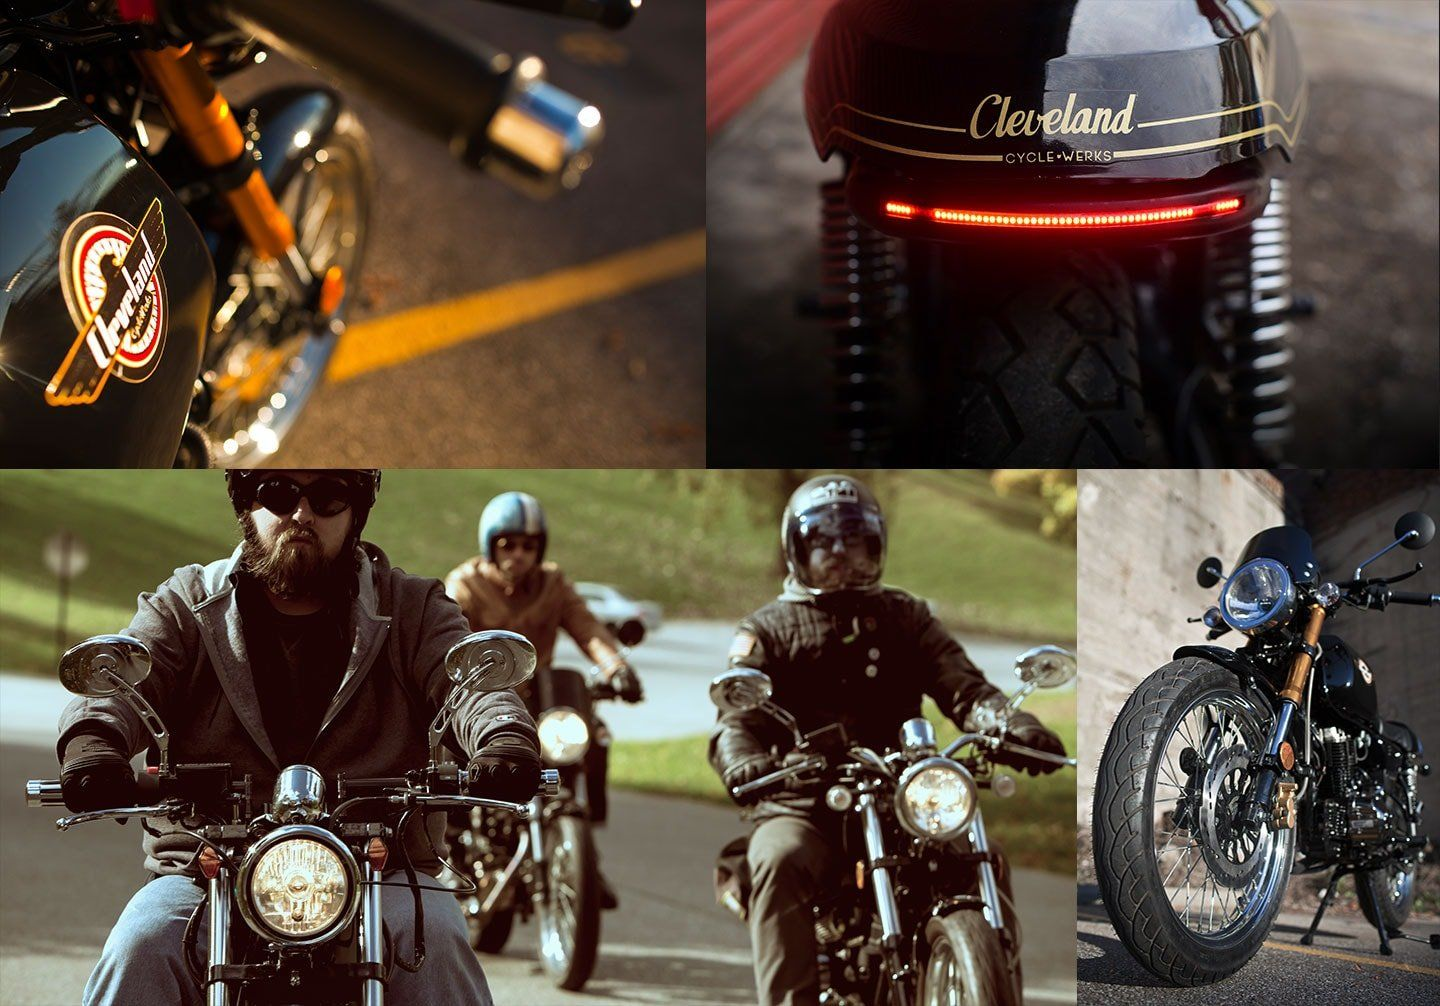 Cleveland CycleWerks Motorcycle Brand in India, Launching